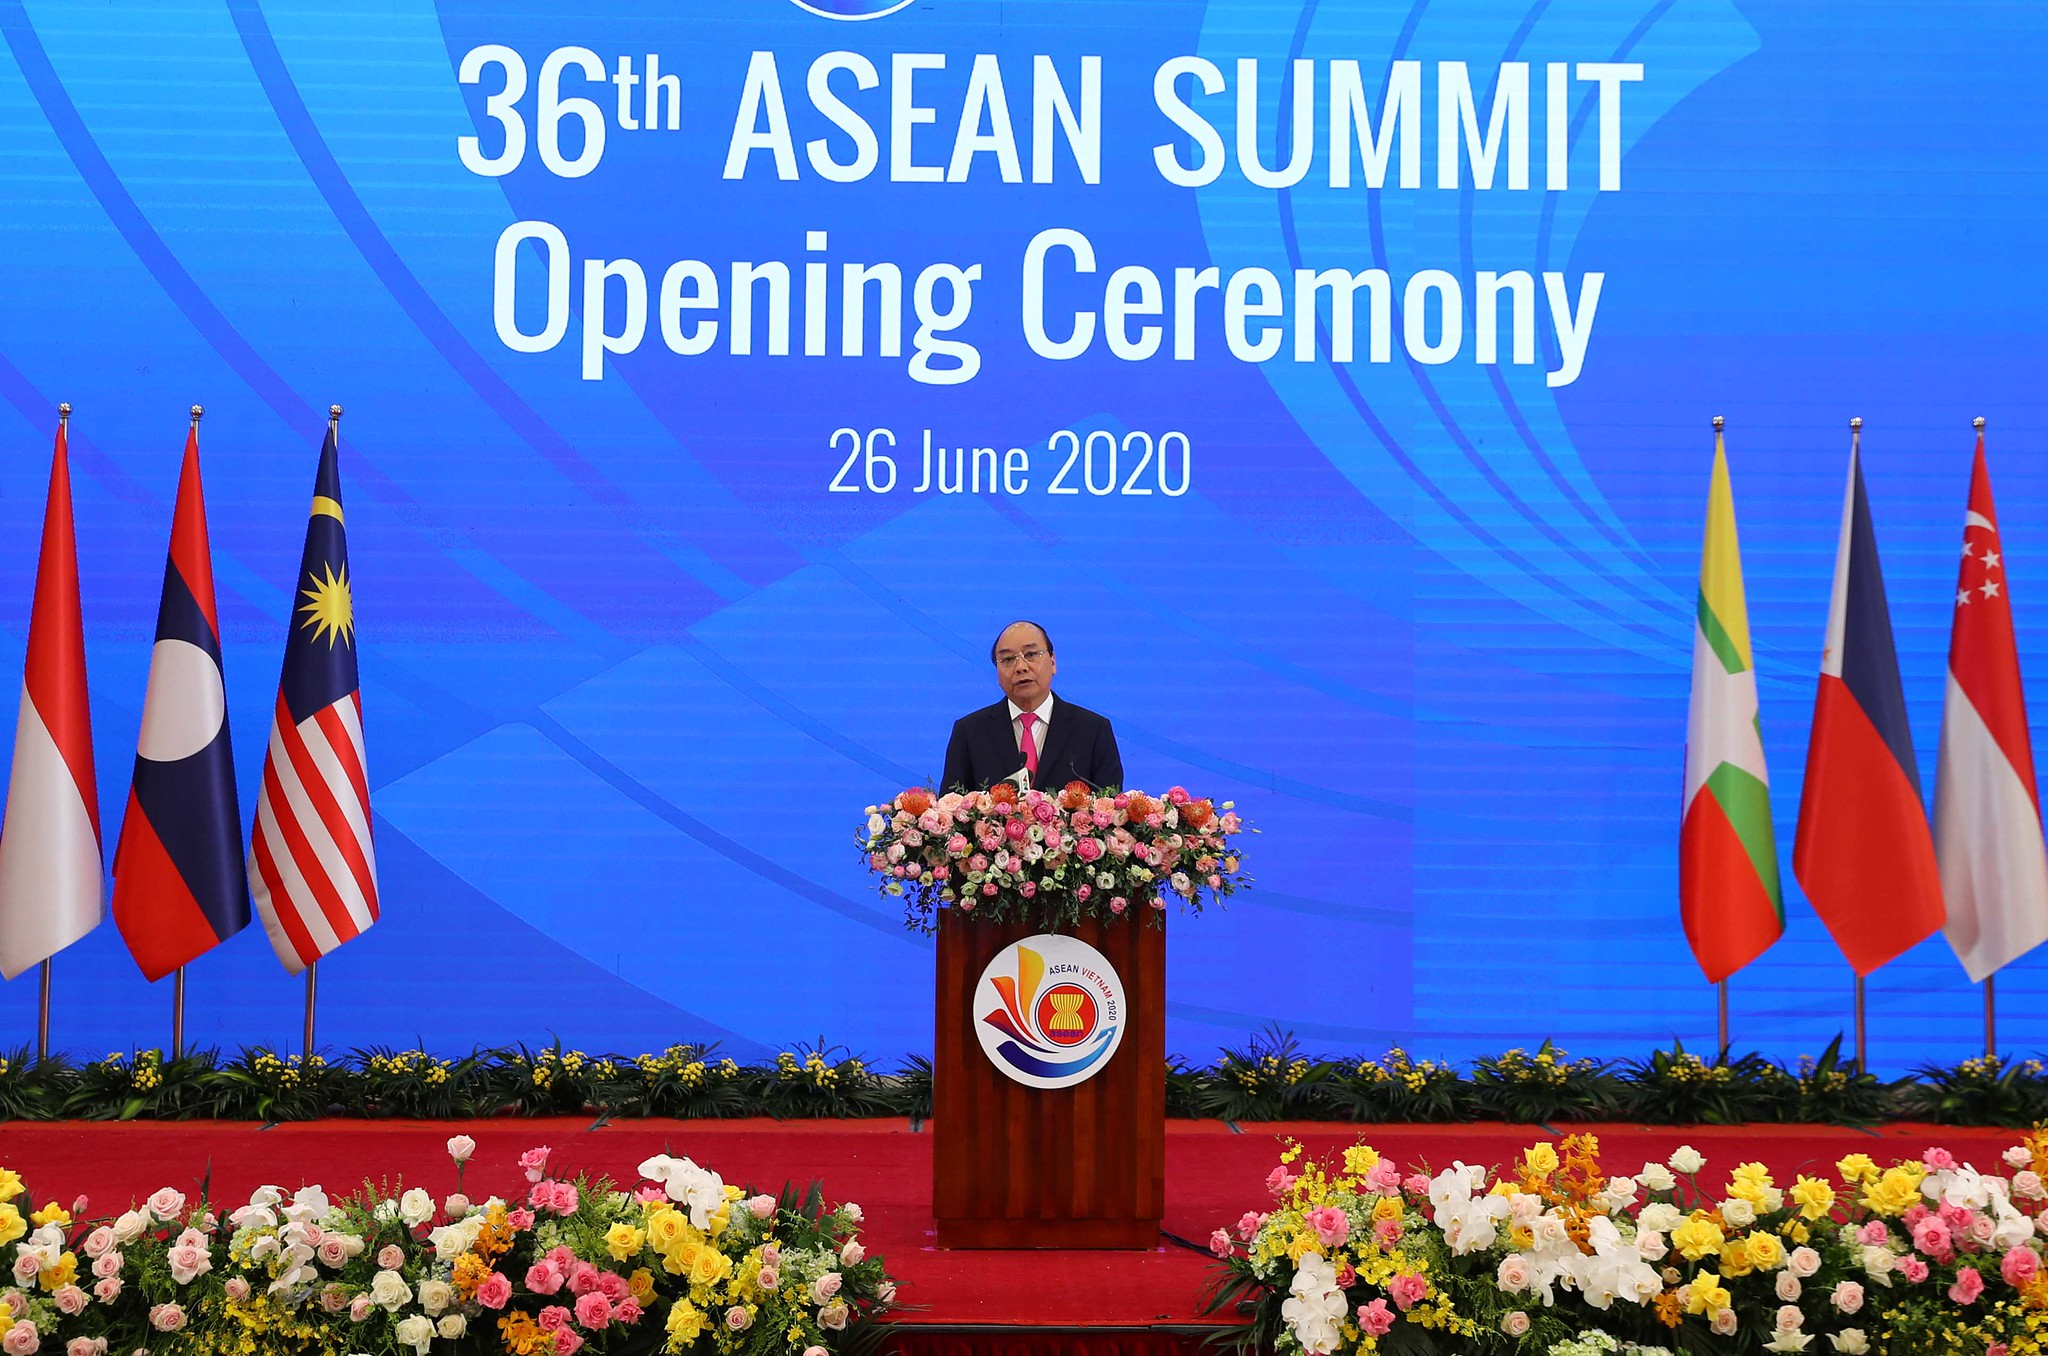 [June 29] The 36th Asean Summit held via video conference